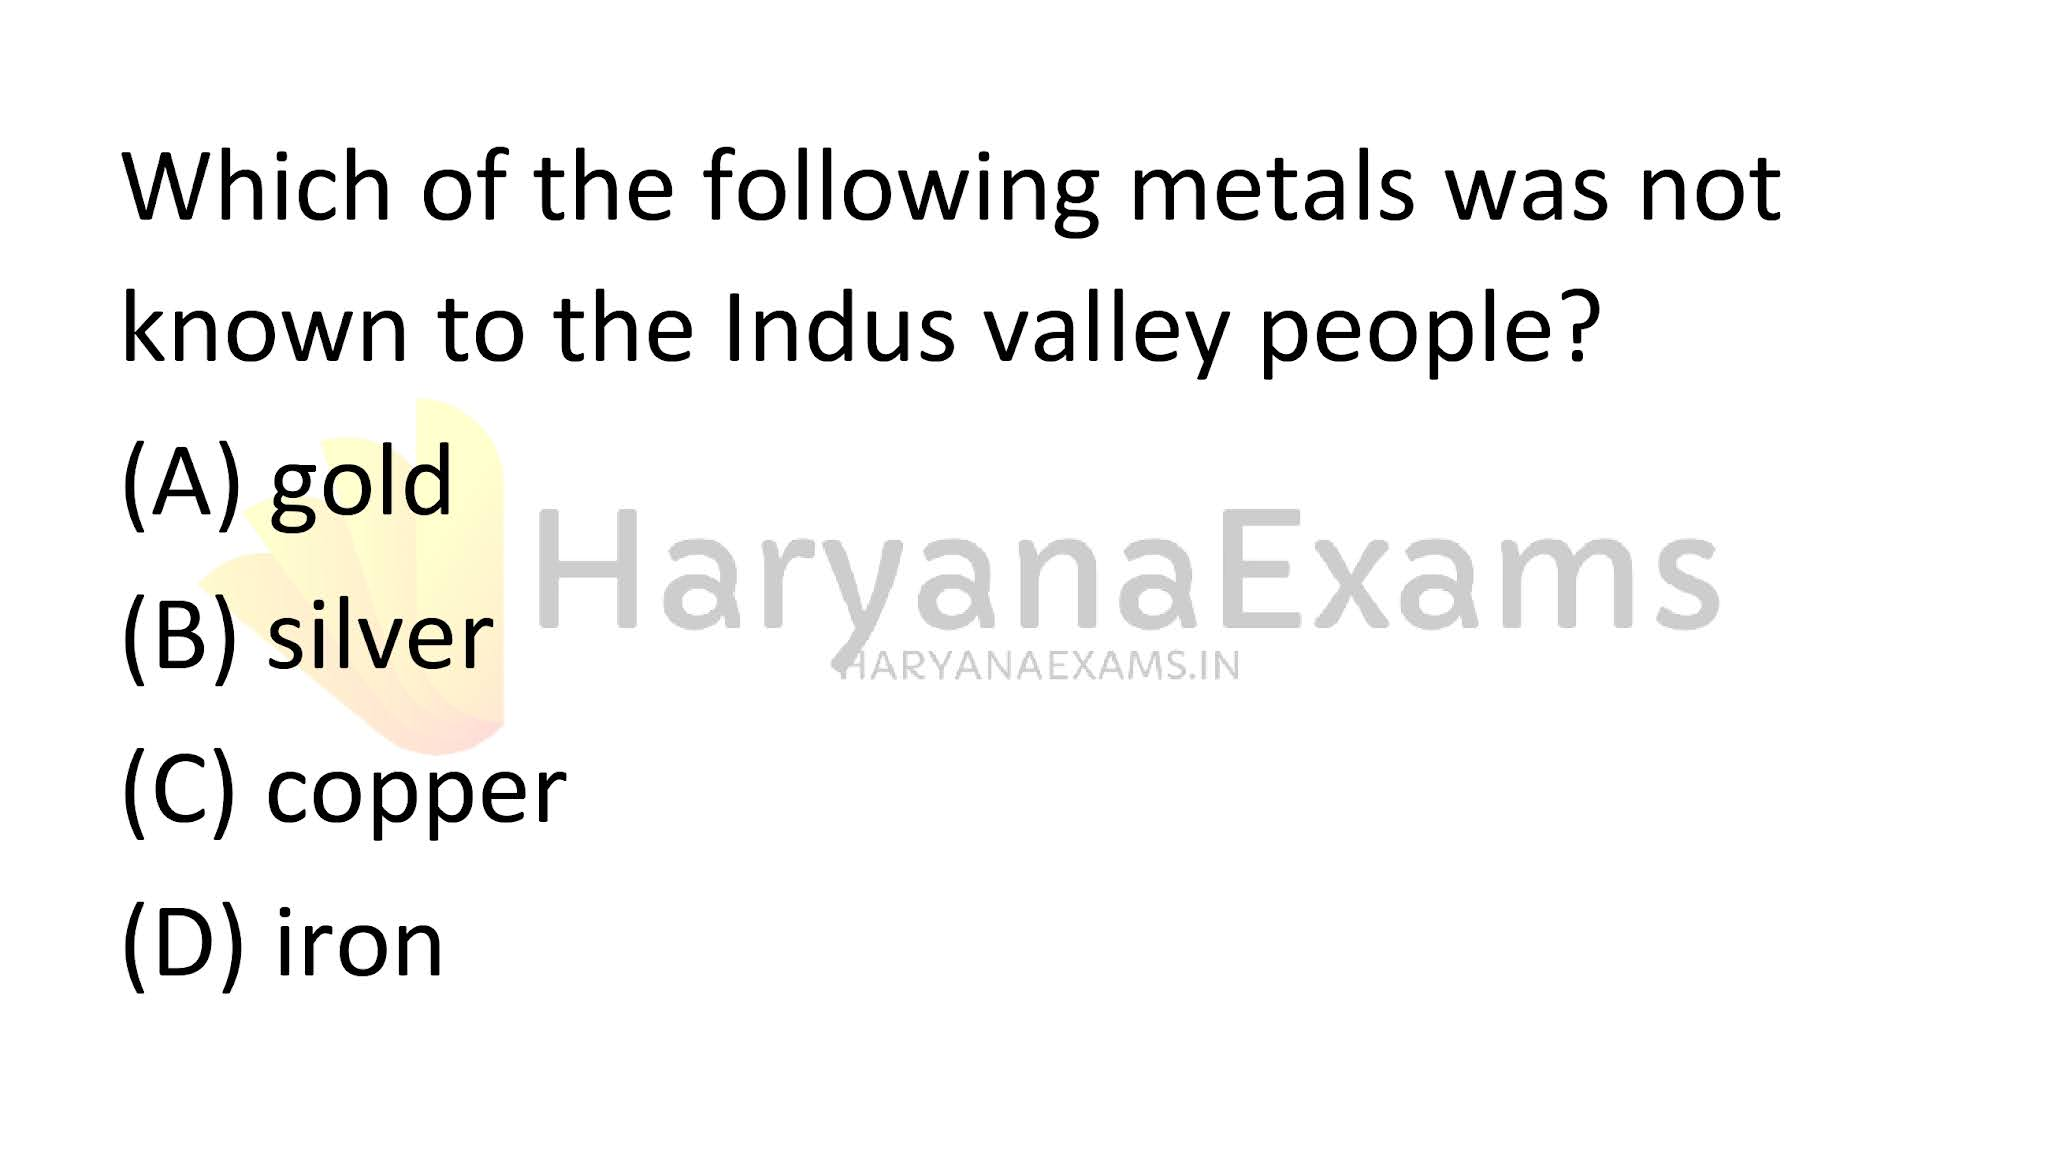 Which of the following metals was not known to the Indus valley people?